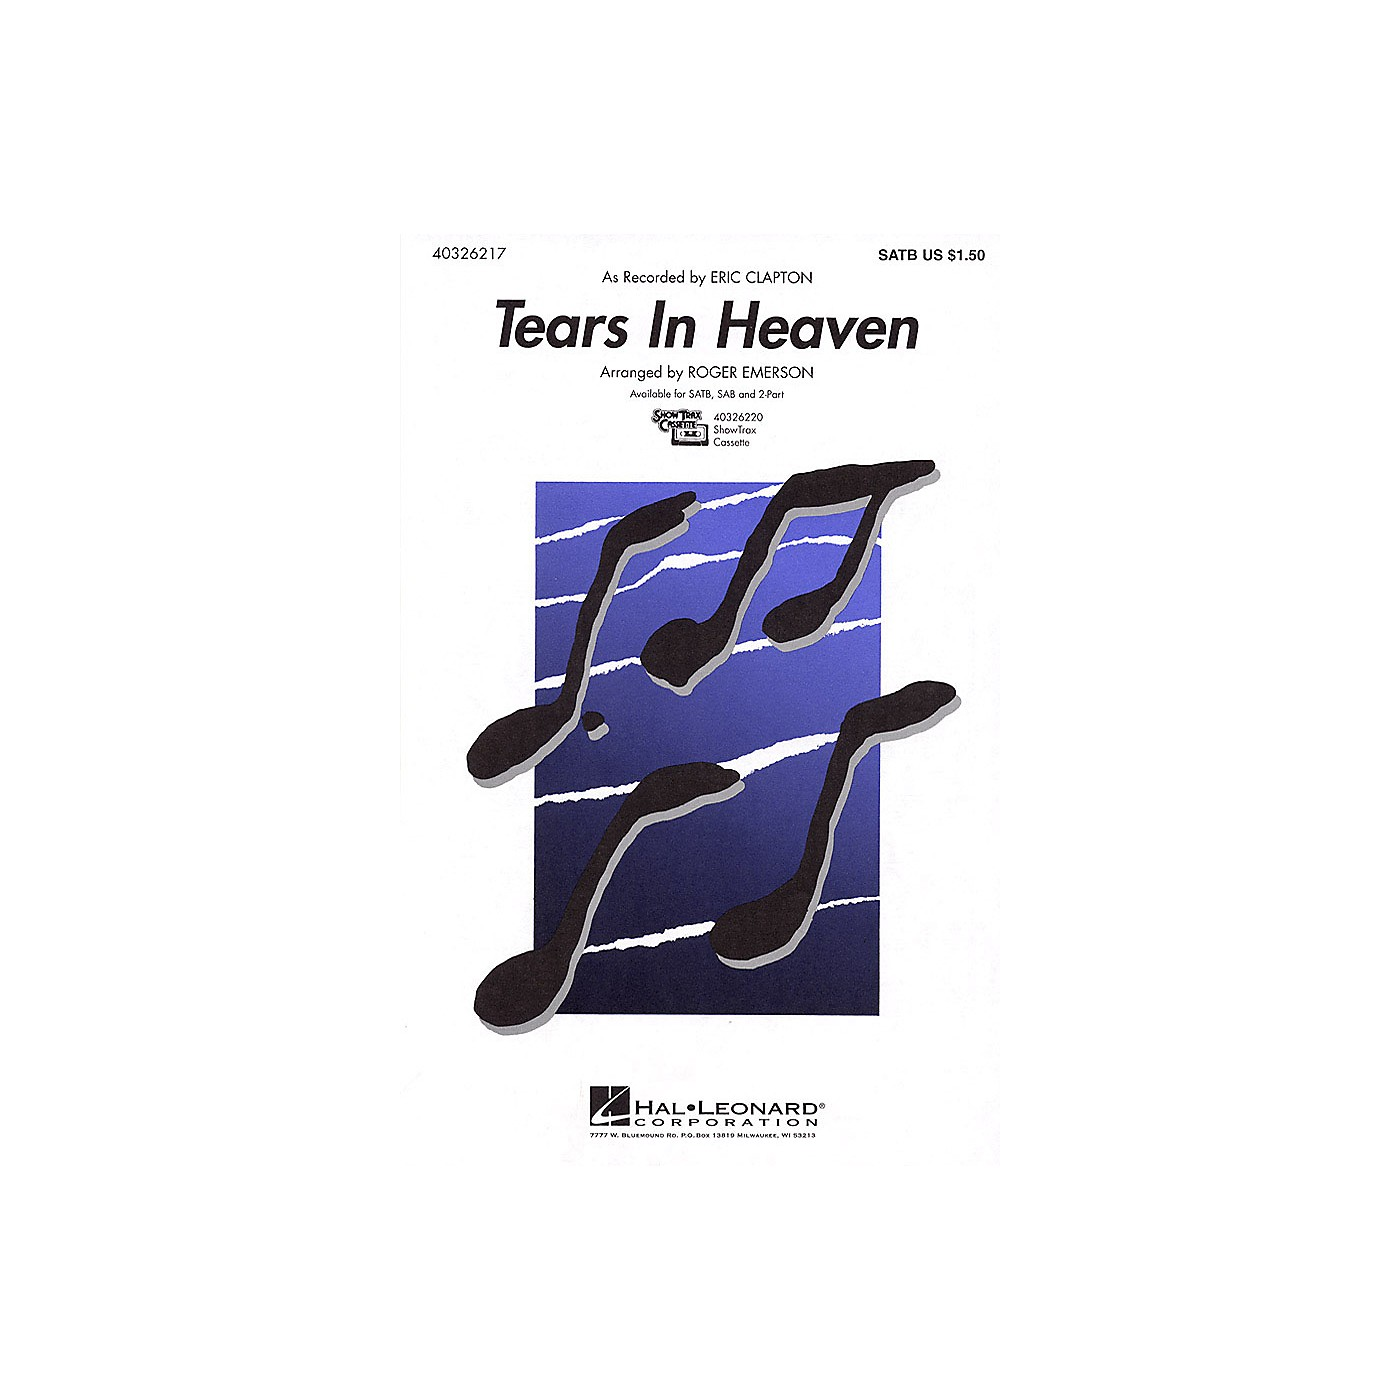 Hal Leonard Tears in Heaven 2-Part by Eric Clapton Arranged by Roger Emerson thumbnail